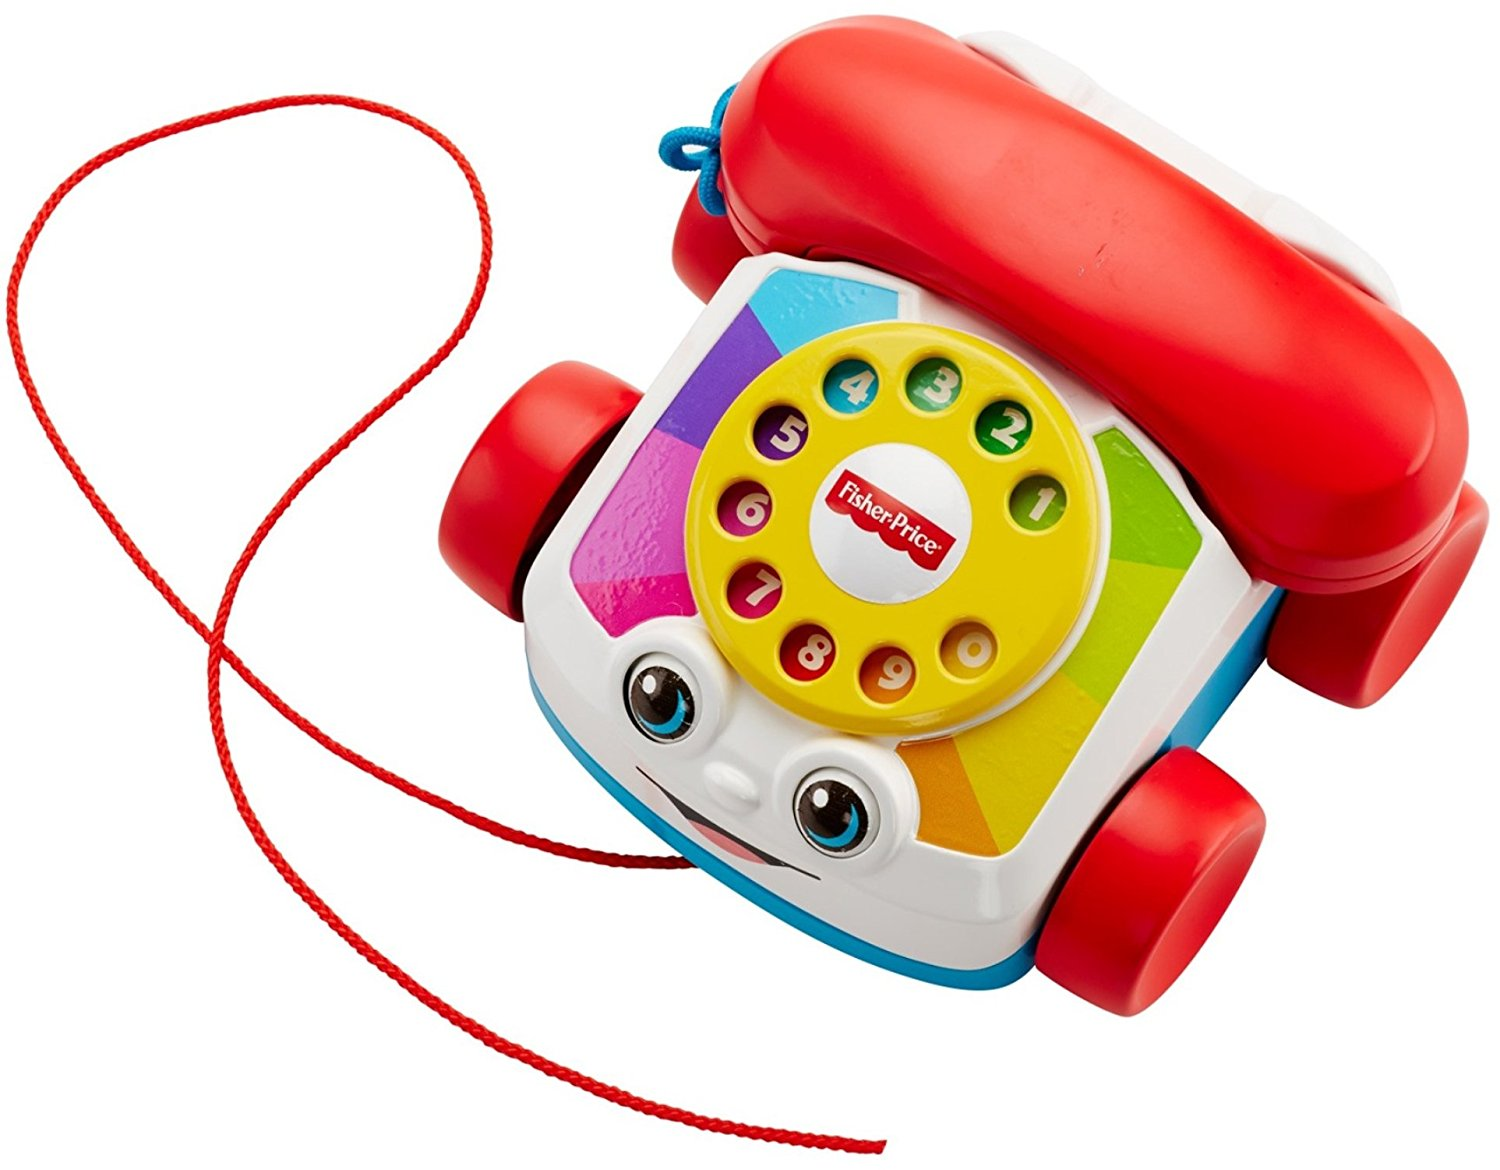 Fisher-Price Chatter Telephone Only $4.99 (Reg. $14.25)!